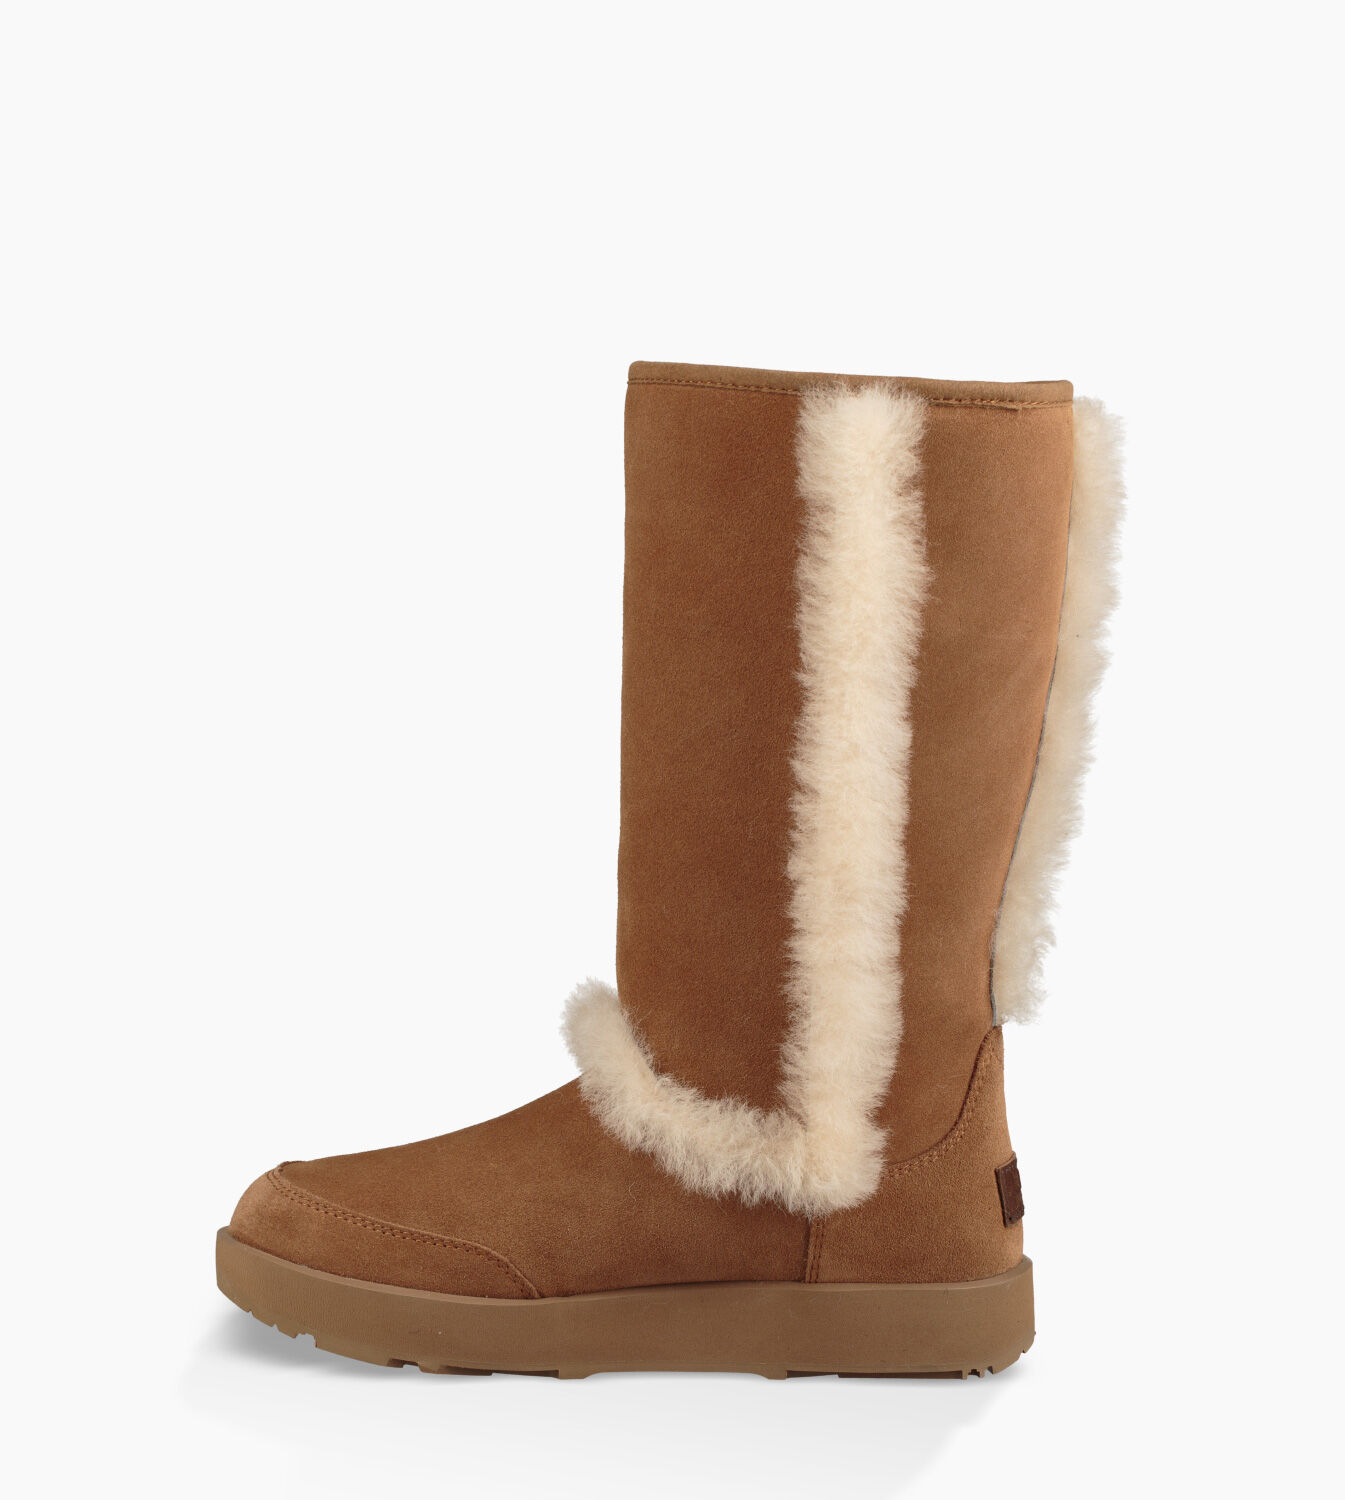 ugg boots 5685 manual for sale rh racenzonderstress com